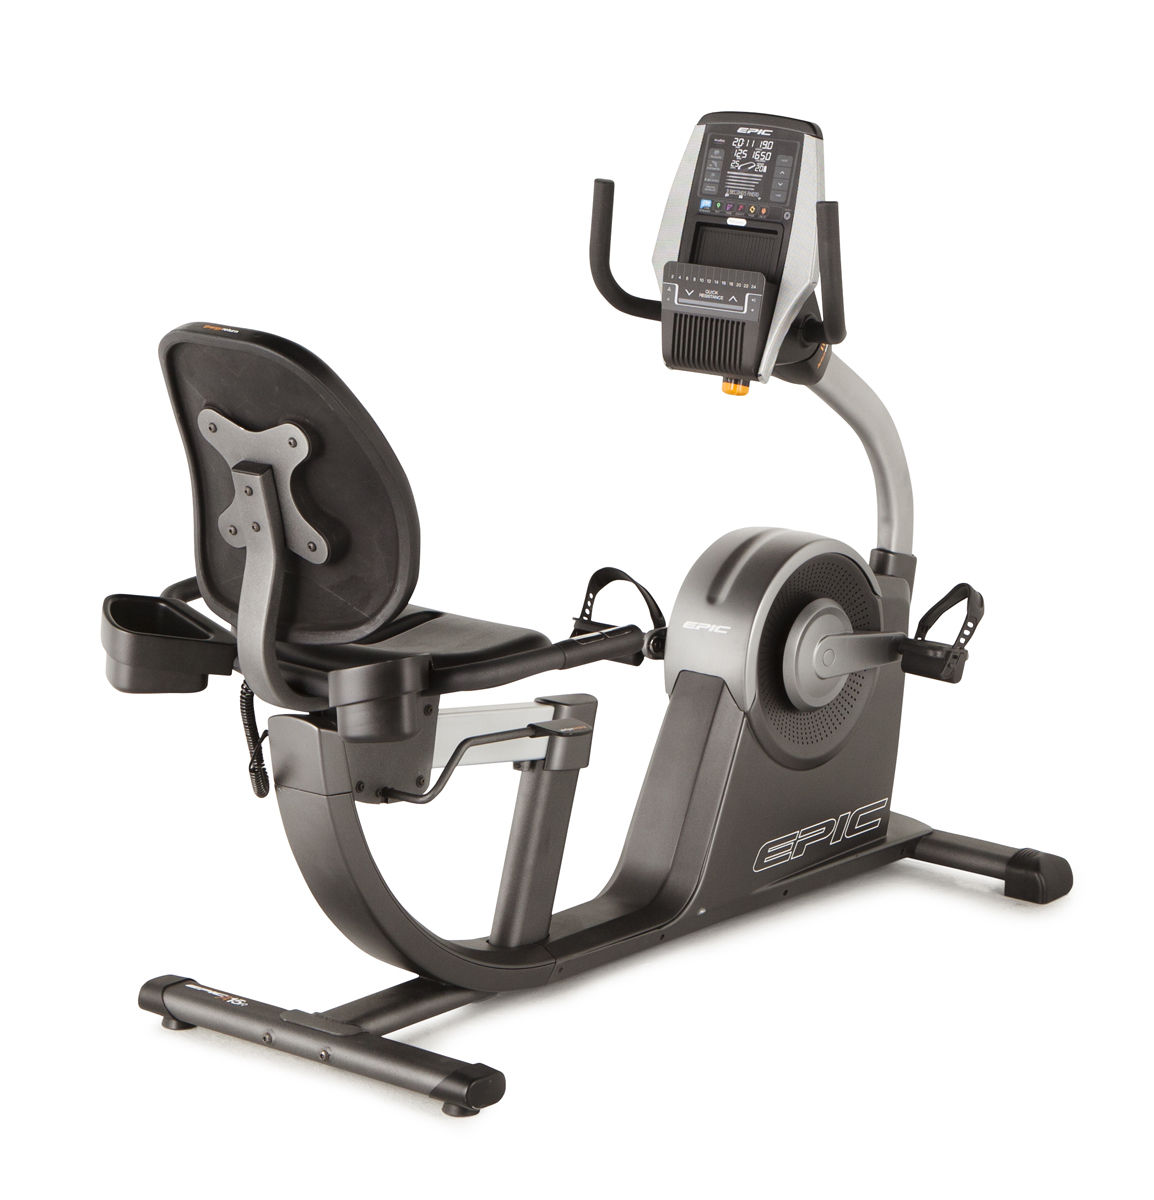 Epic A17R Recumbent Exercise Bike Home Gym Workout Machine